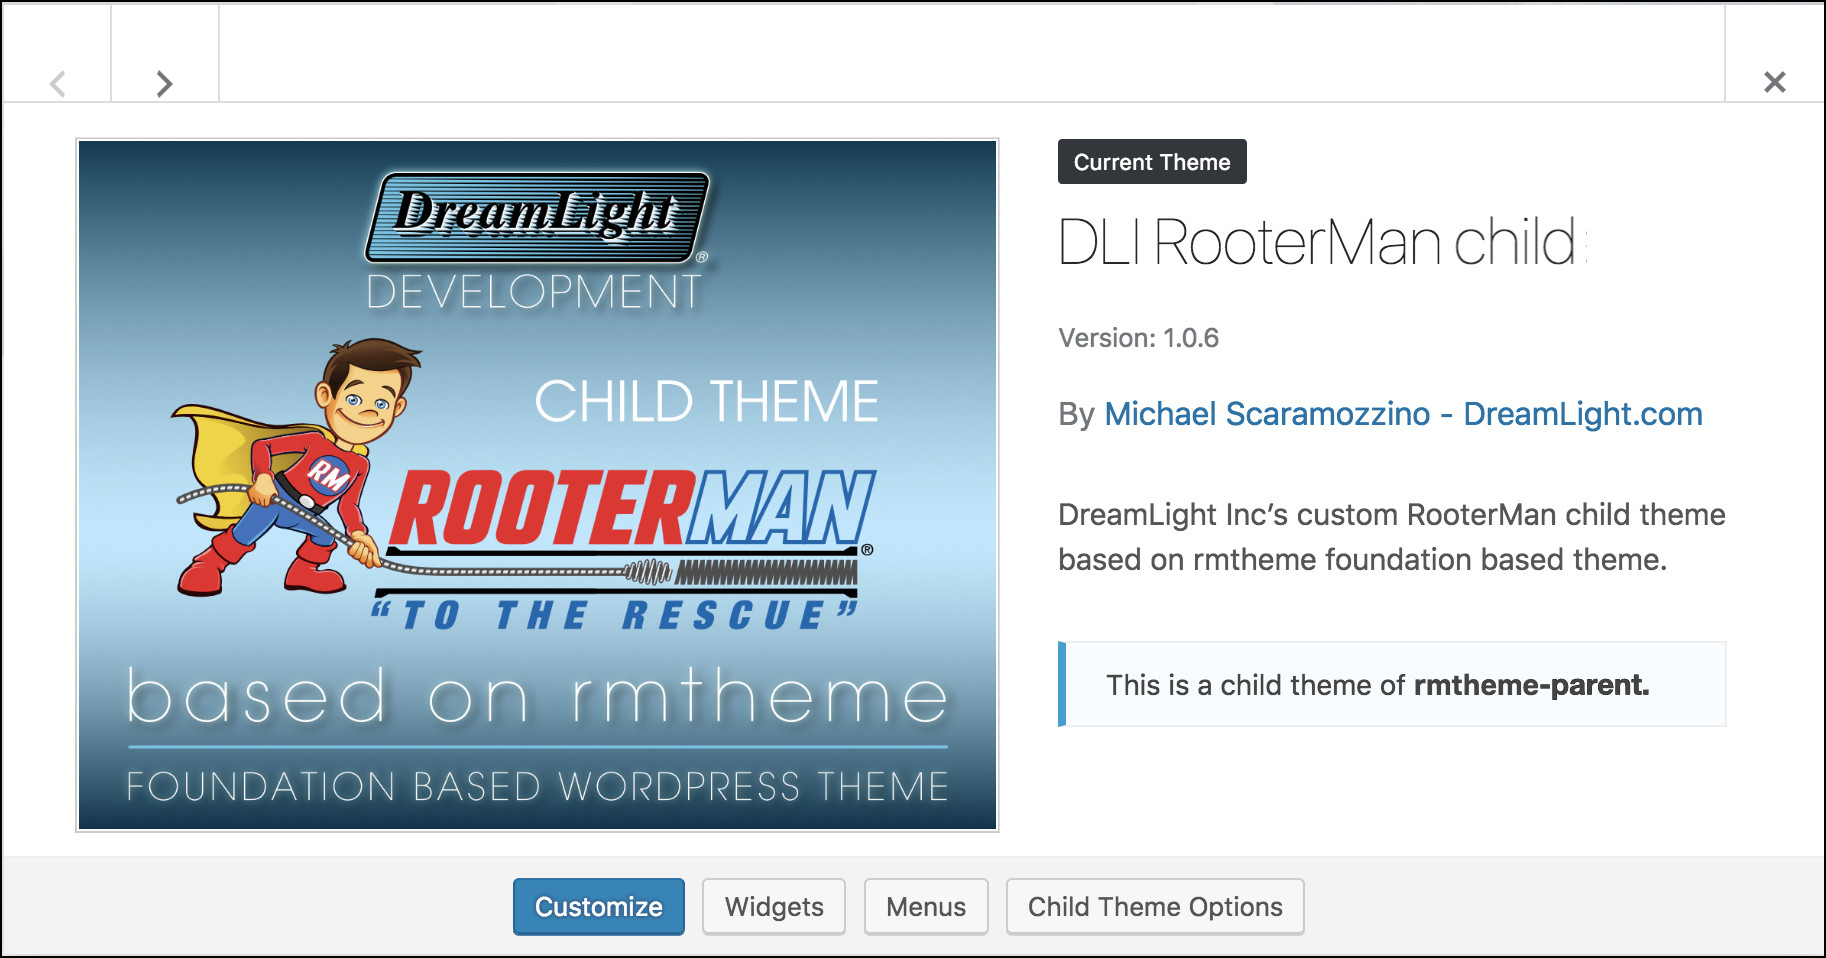 DLI RooterMan Child Theme